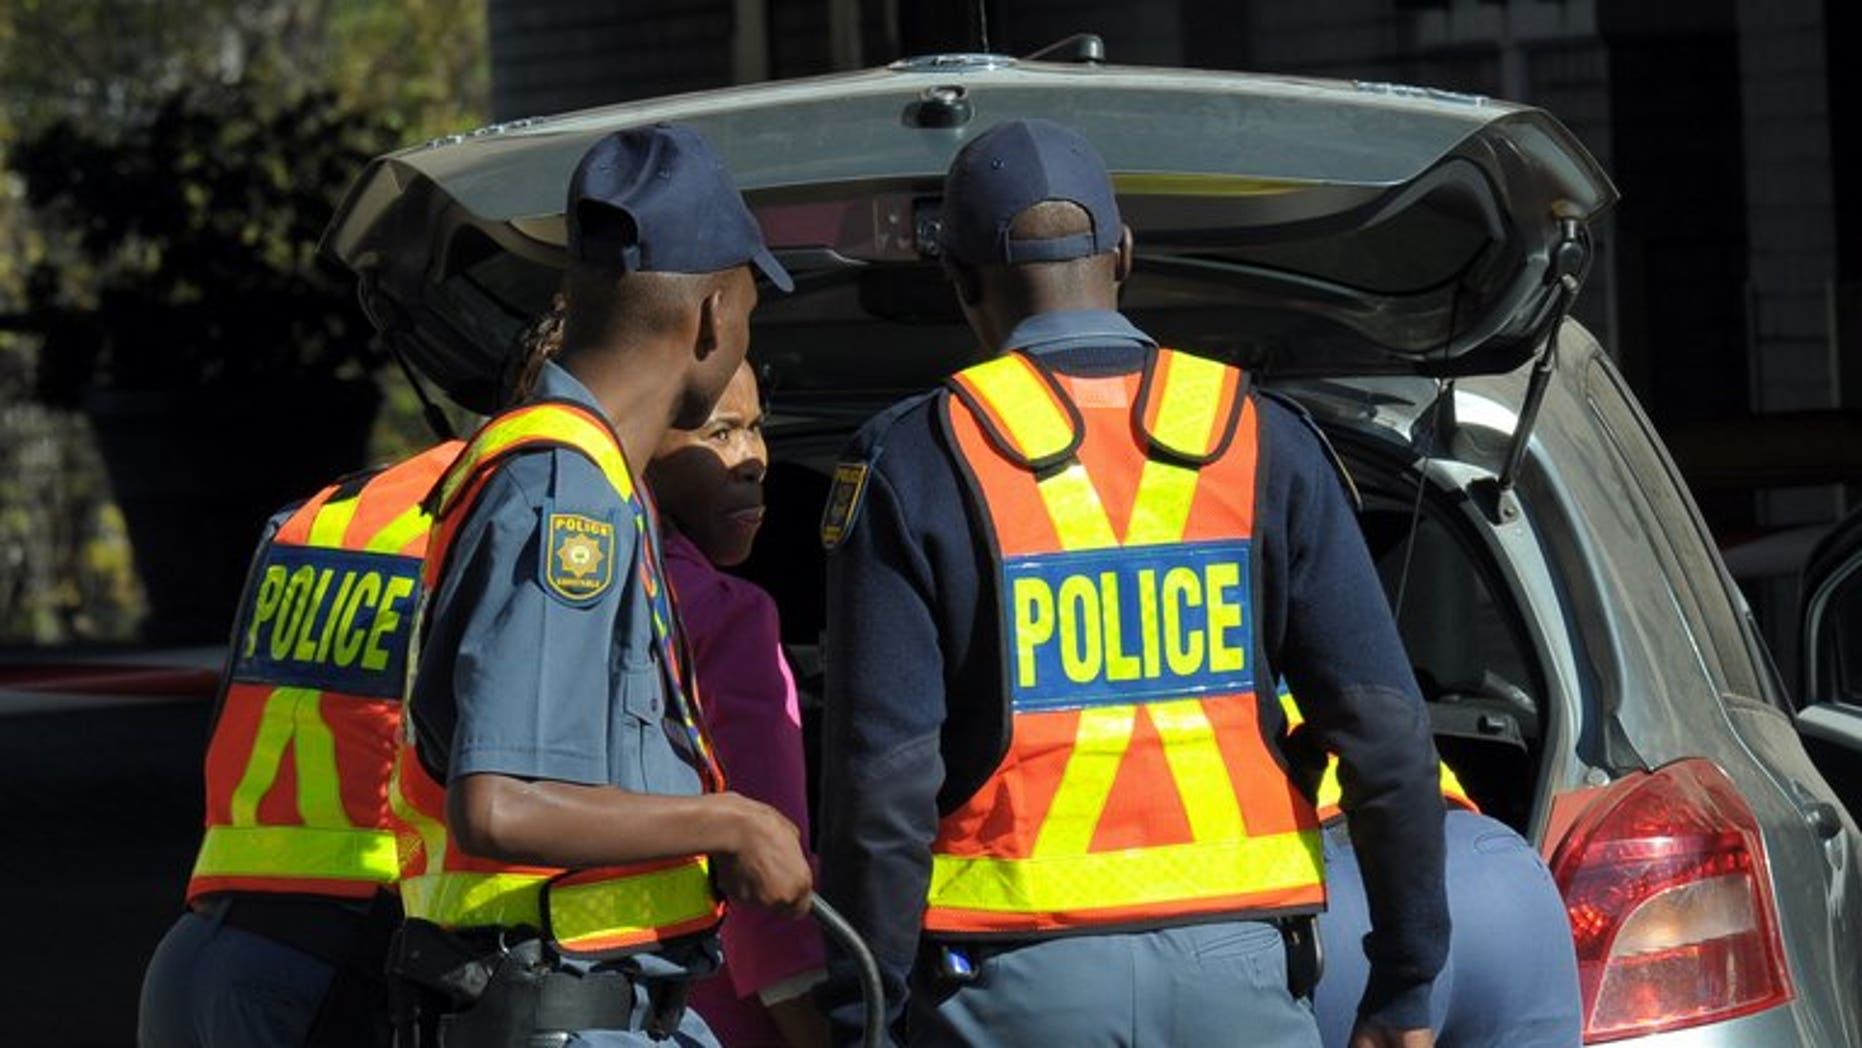 Police check people arriving at the Medi-Clinic Heart Hospital in Pretoria, last week. A South African police commander was found murdered in a field with his hands and feet bound in the early hours of Tuesday, a police commissioner said.